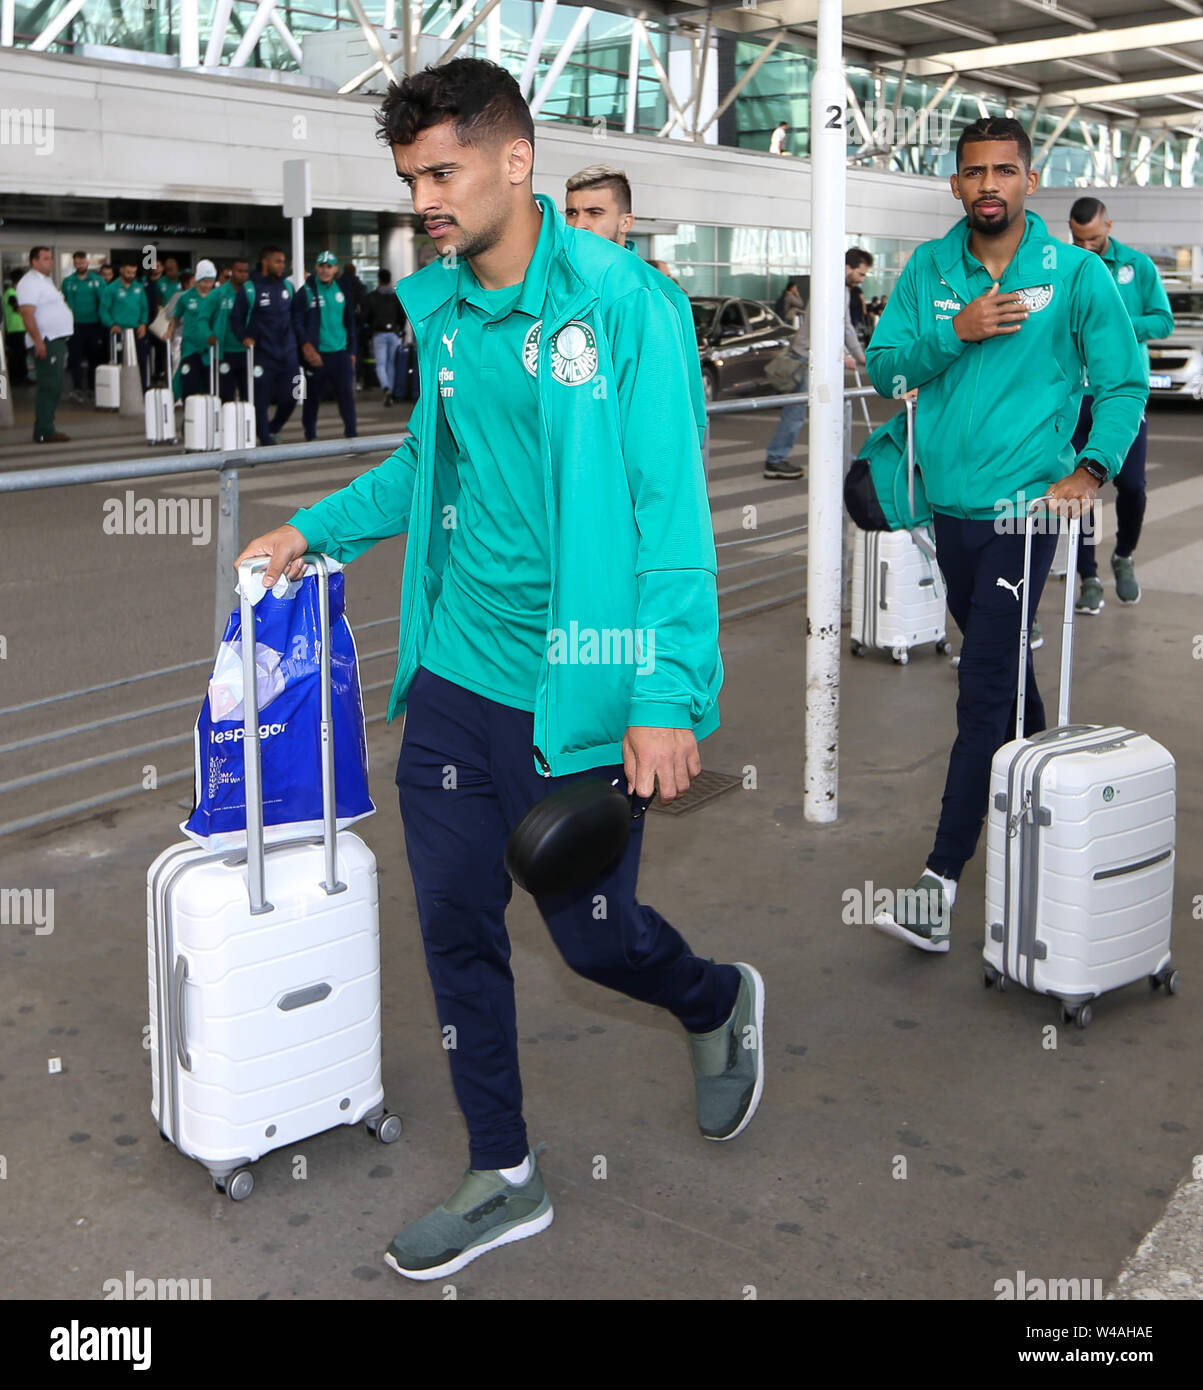 Buenos Aires, Argentina. 21st July, 2019. Gustavo Scarpa, from SE Palmeiras, during landing, at Buenos Aires International Airport. Credit: Cesar Greco/FotoArena/Alamy Live News - Stock Image